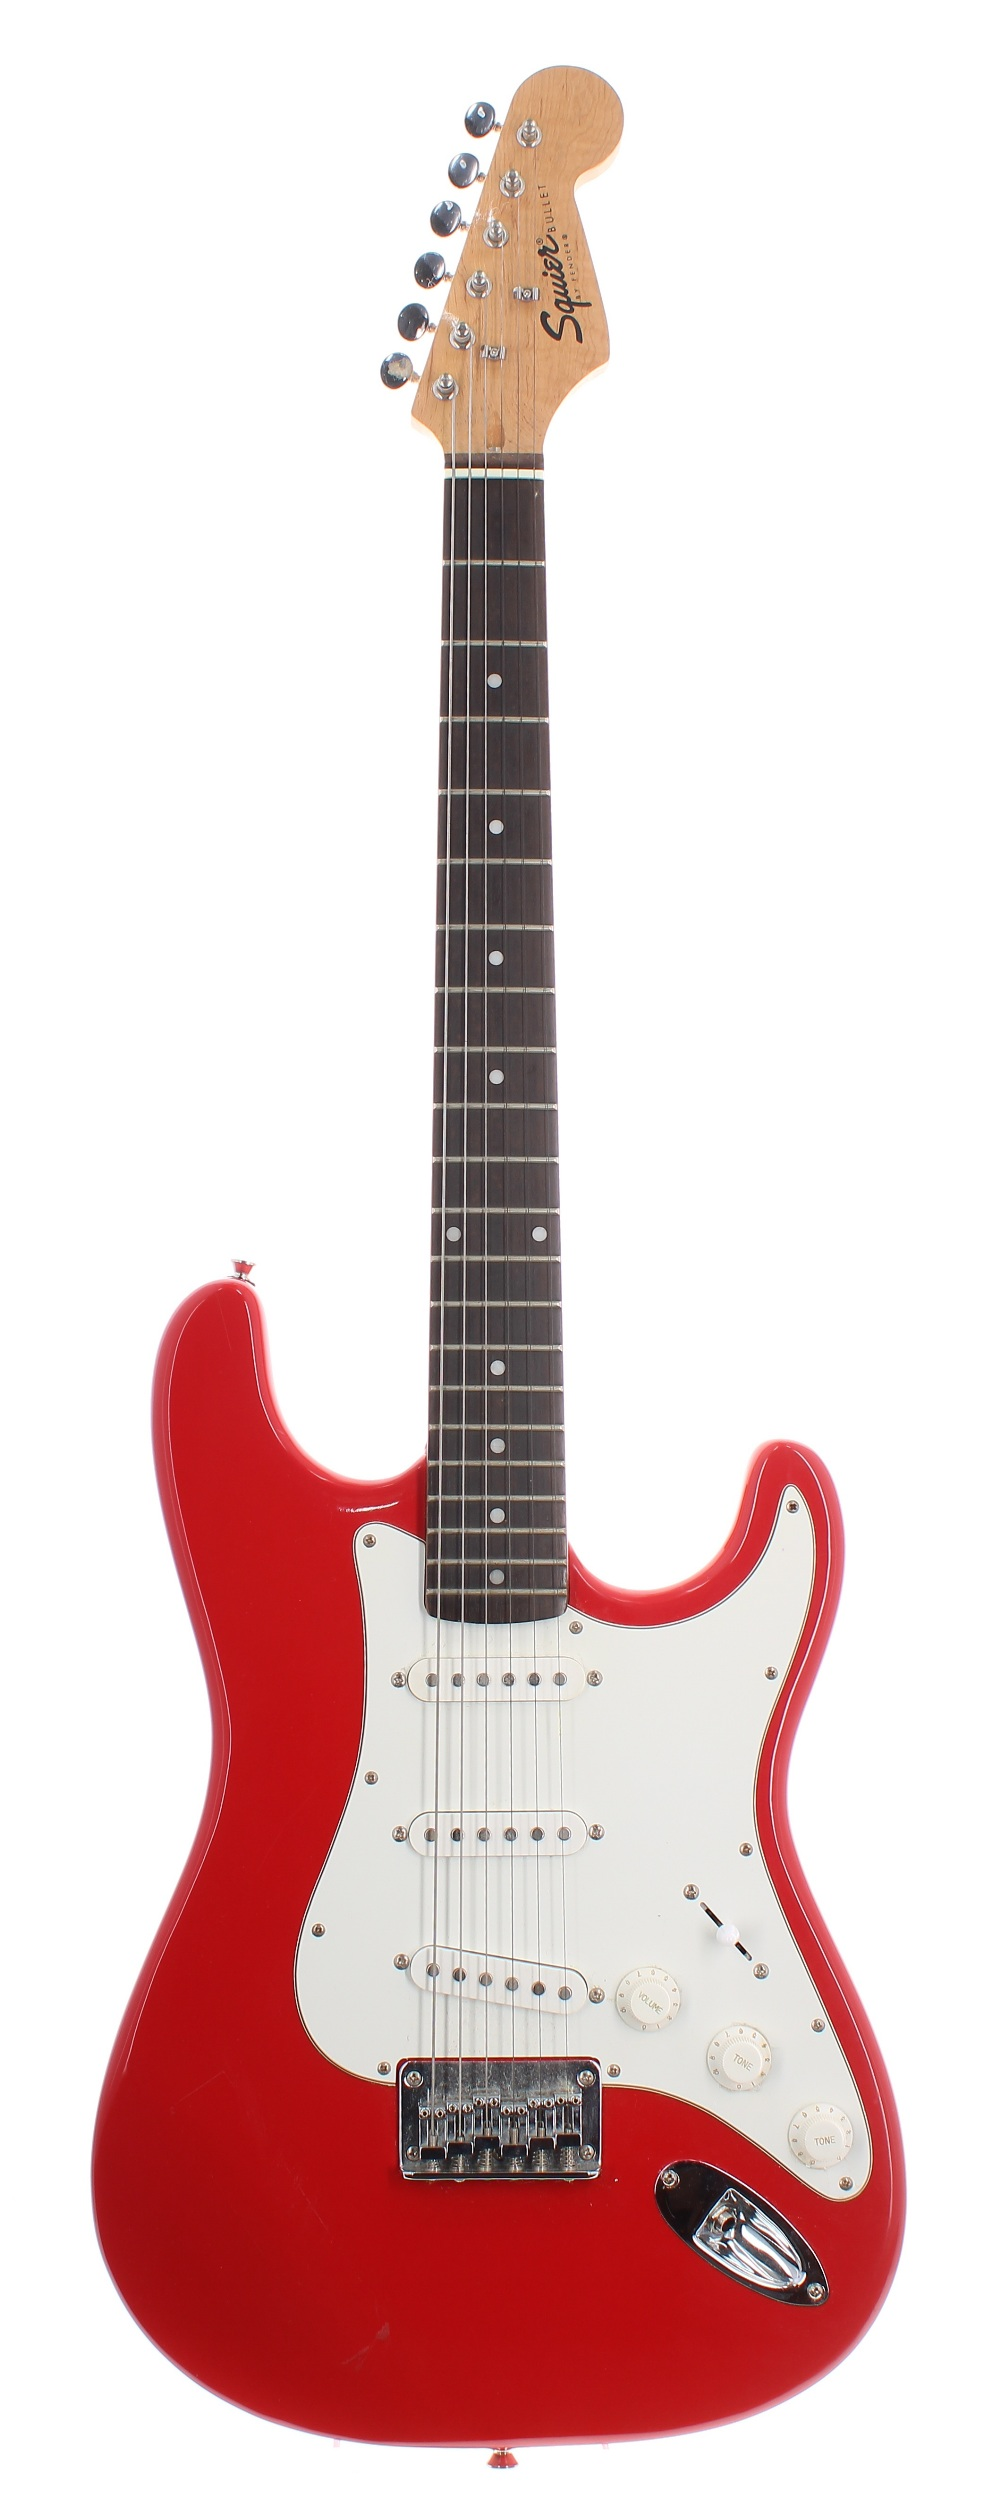 2000 Squier by Fender Bullet hardtail electric guitar, made in Indonesia; Finish: red, scratching to